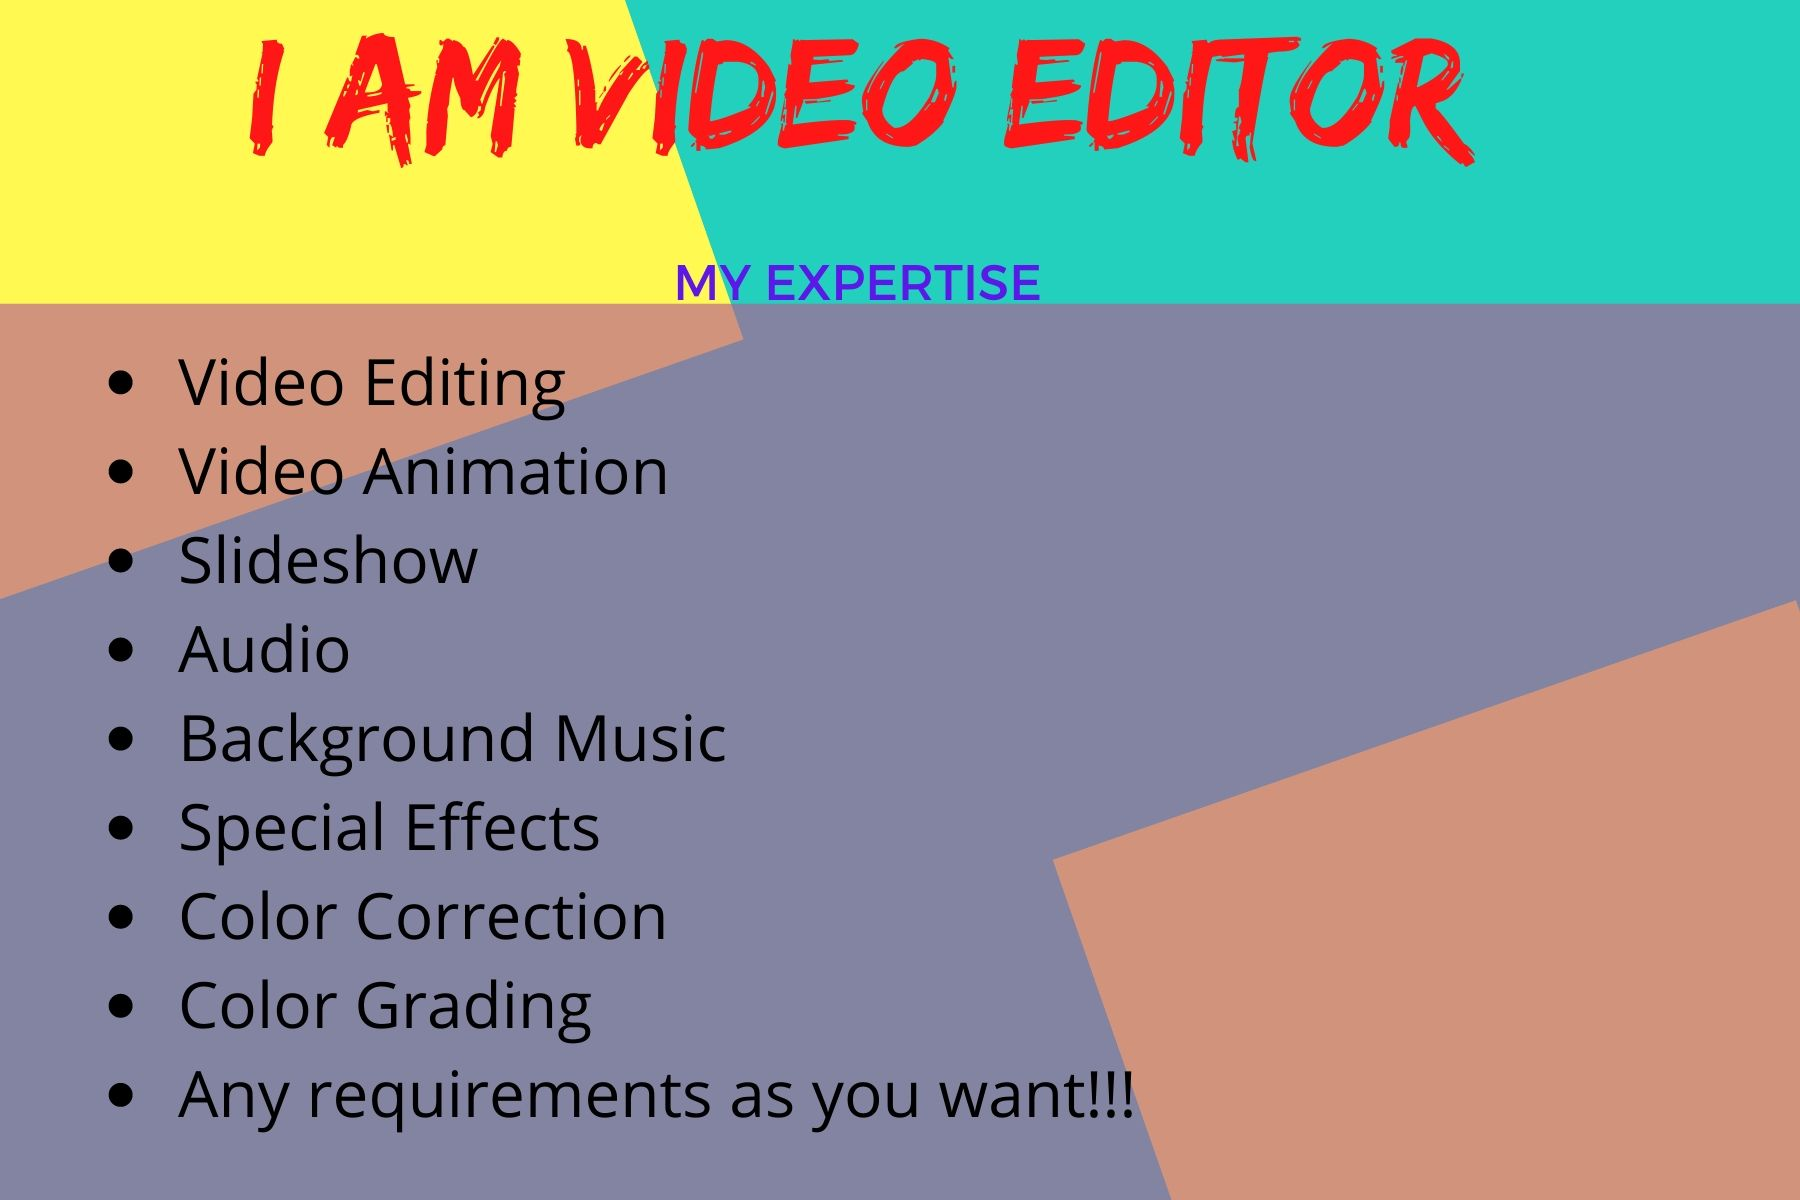 I am Professional Video Editor